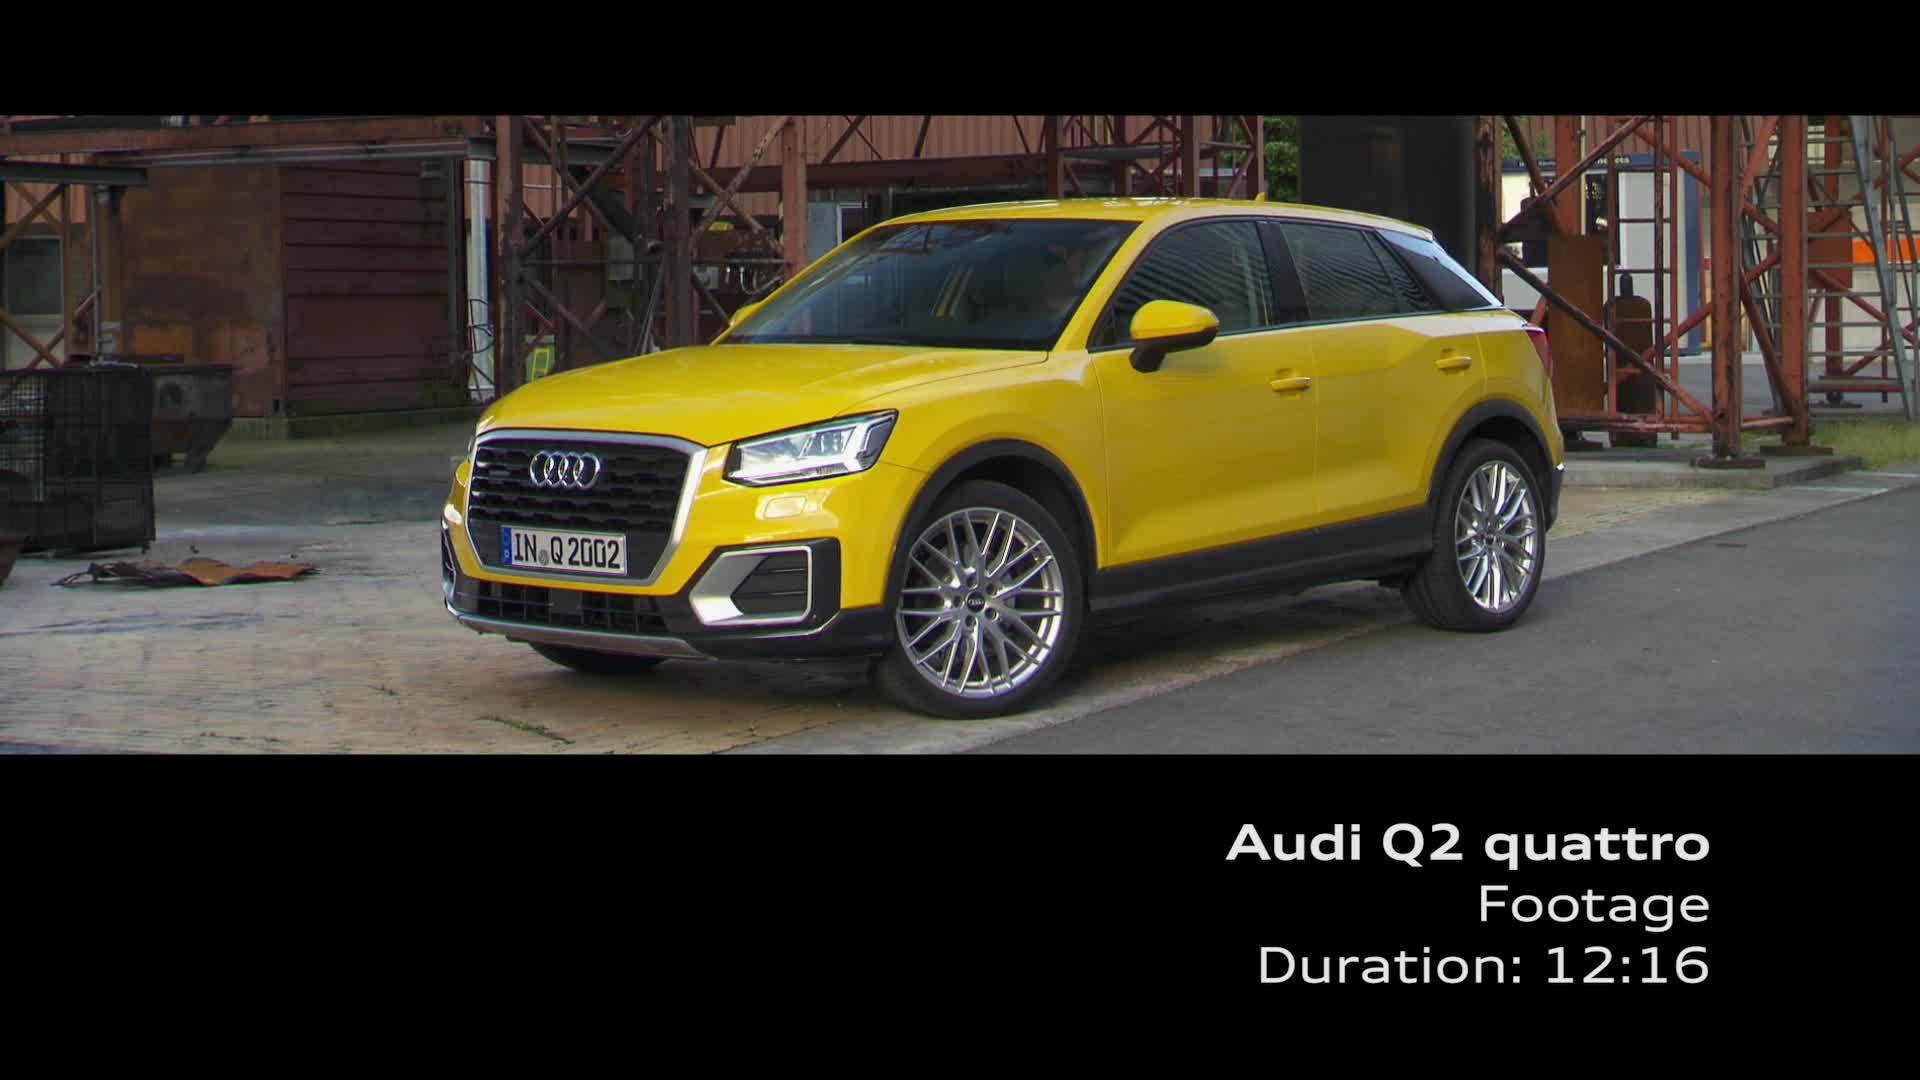 Audi Q2 - Footage on Location, Vegas Yellow